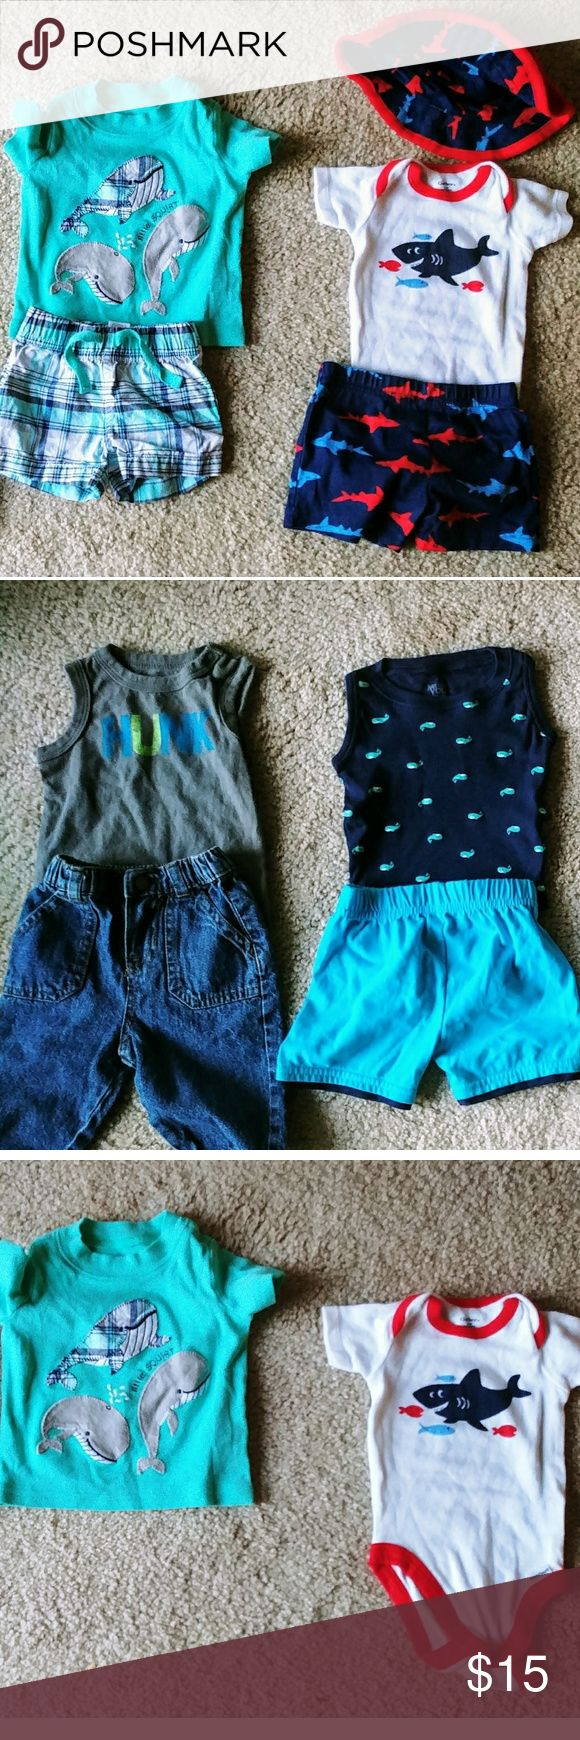 NWOT Bundle of 4 summer outfits baby boy The first one is a t shirt and shorts set from Carter's then a one piece with matching shorts and hat the second photo is a sleevless one piece reading HUNK across with jeans both pieces are Circo brand then a cat and Jack outfit. Never used kid grew to fast. Cat & Jack Shirts & Tops #babyboyshorts #babyboyjeans #kidoutfits